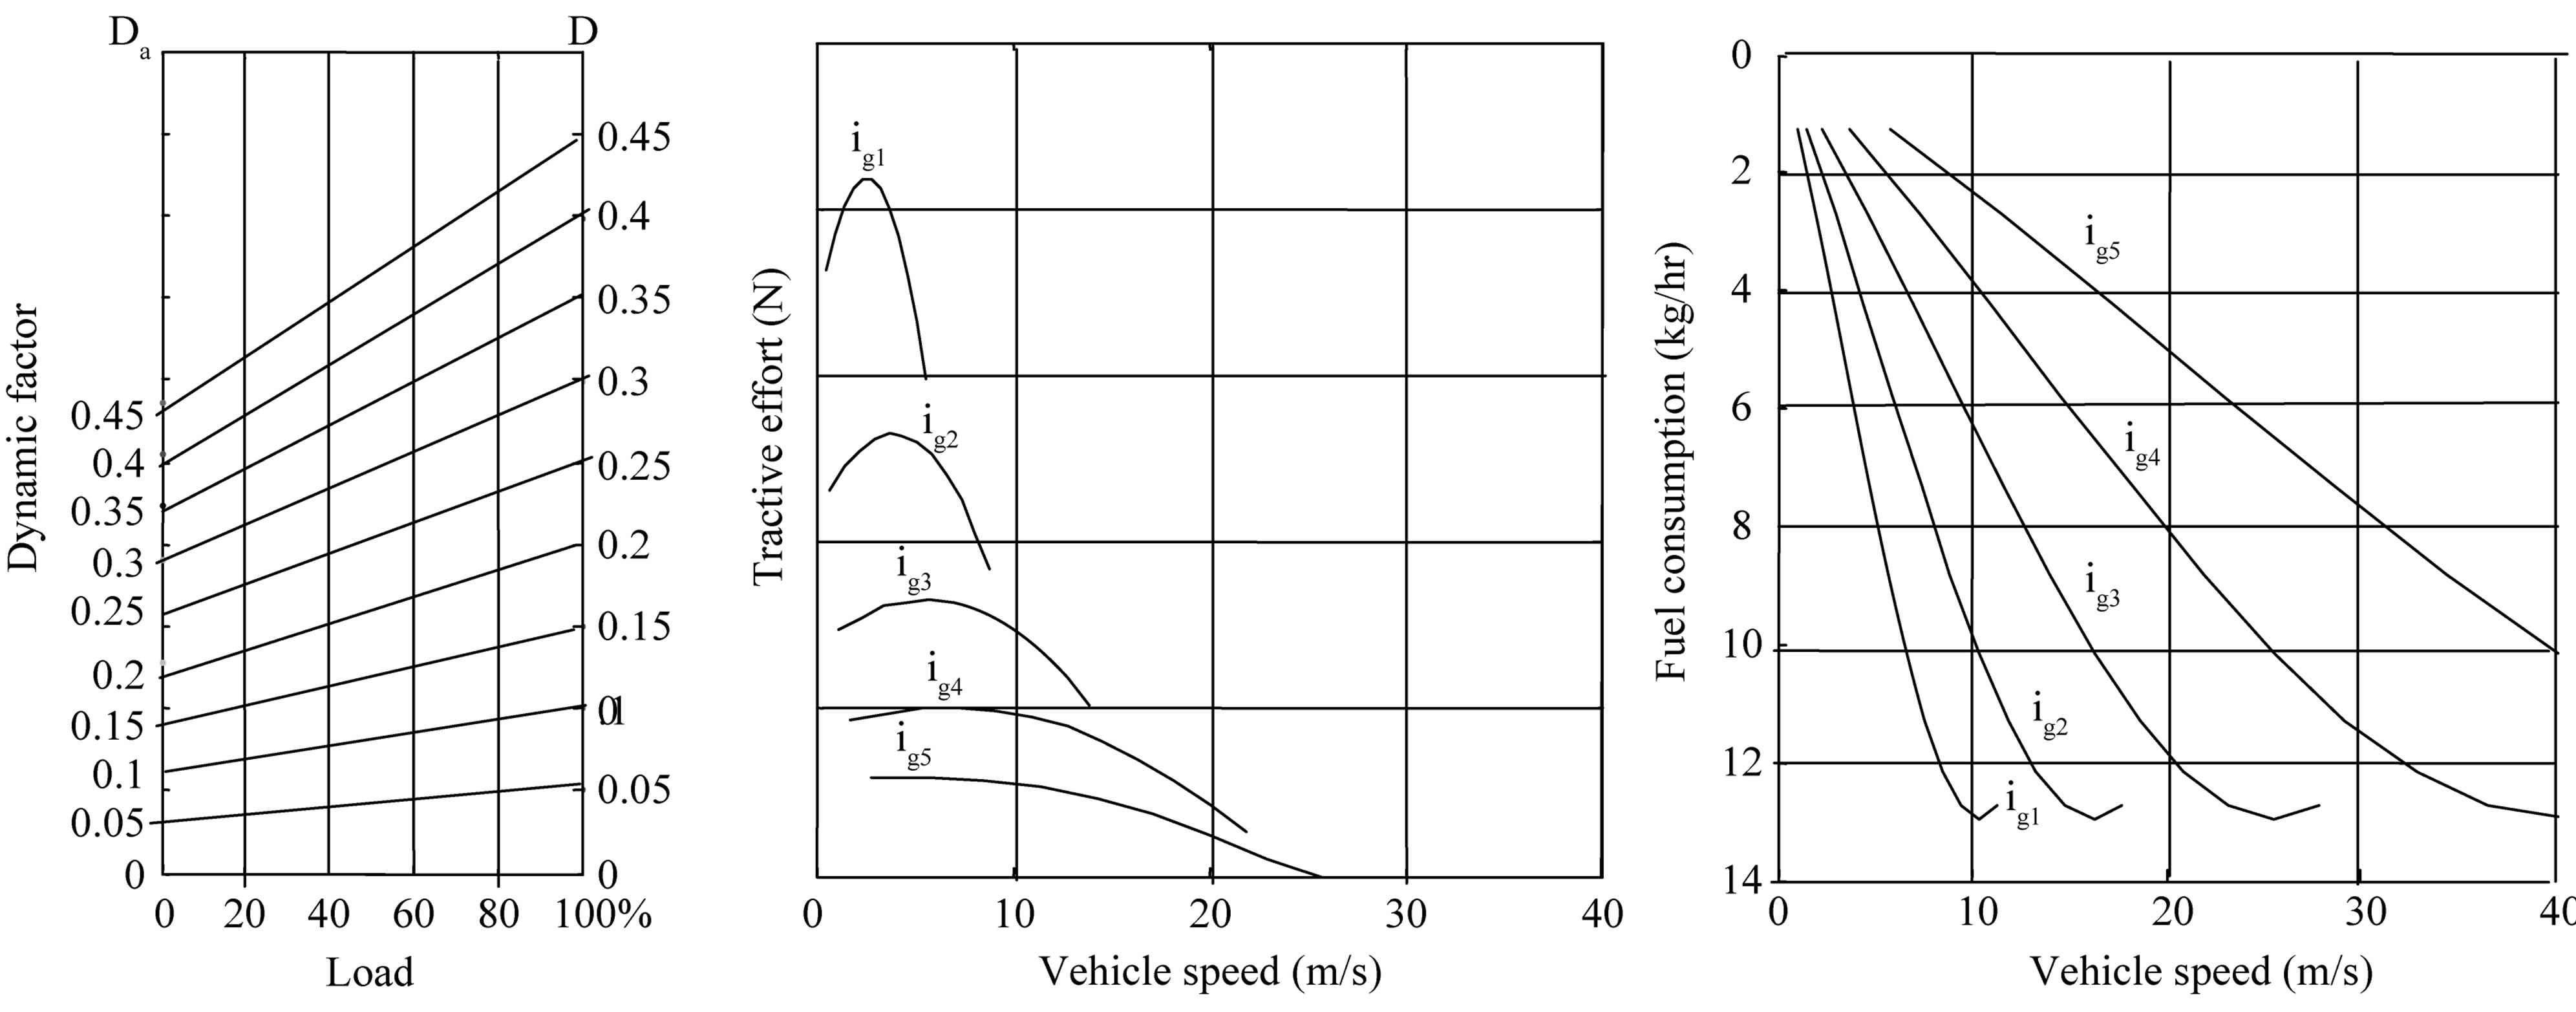 Vehicle dynamic passport in which stand for dynamic factors with different loads and engine fuel consumption at all gear ratios